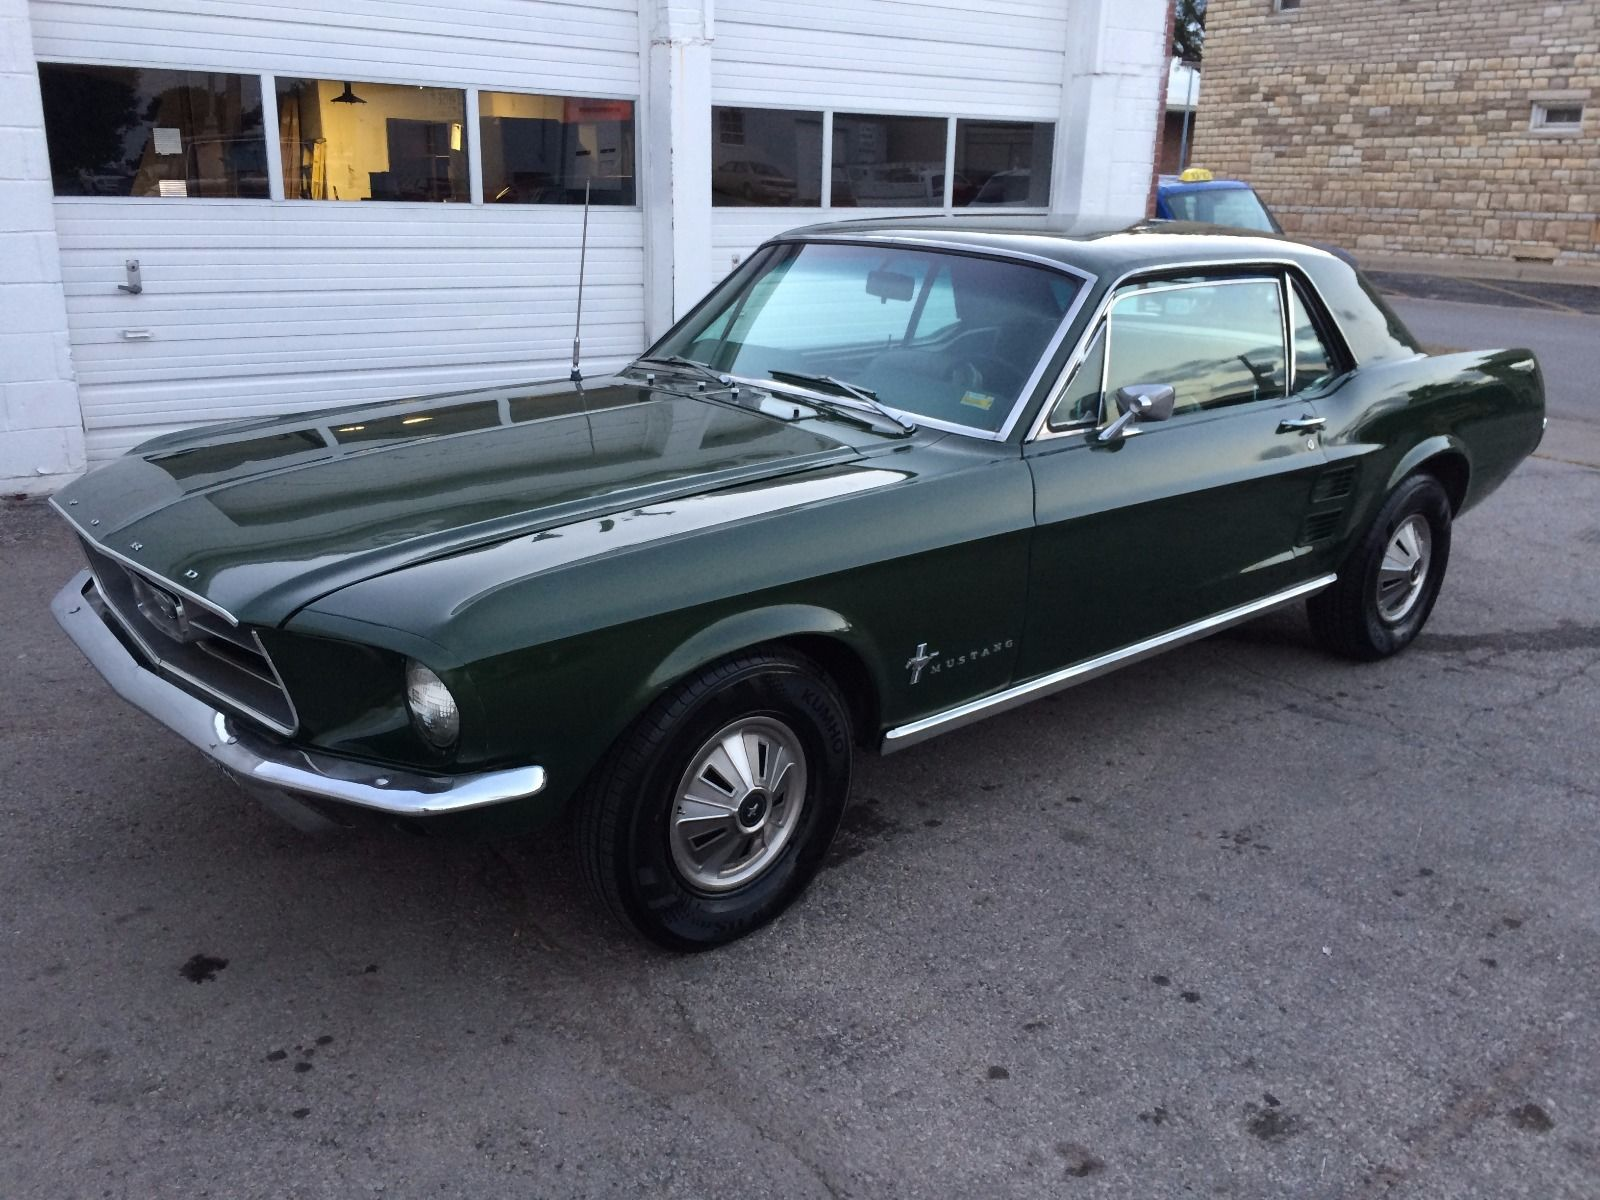 This 1967 ford mustang is for sale on ebay esd may earn commisions when a product is purchased from this link in kansas city missouri with a reserve